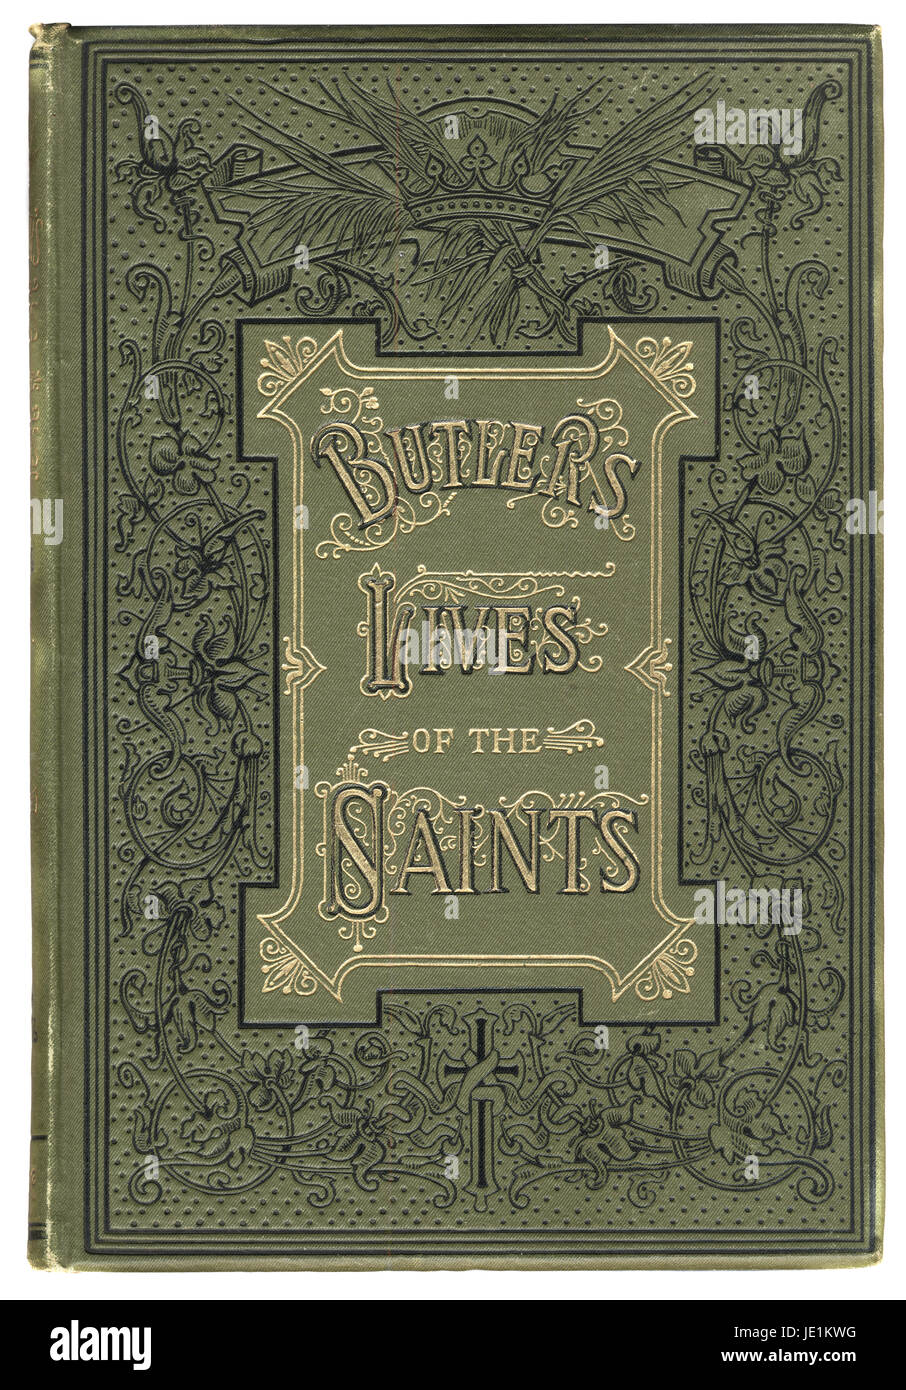 Victorian book cover for Butlers Lives of the Saints, 19th Century - Stock Image